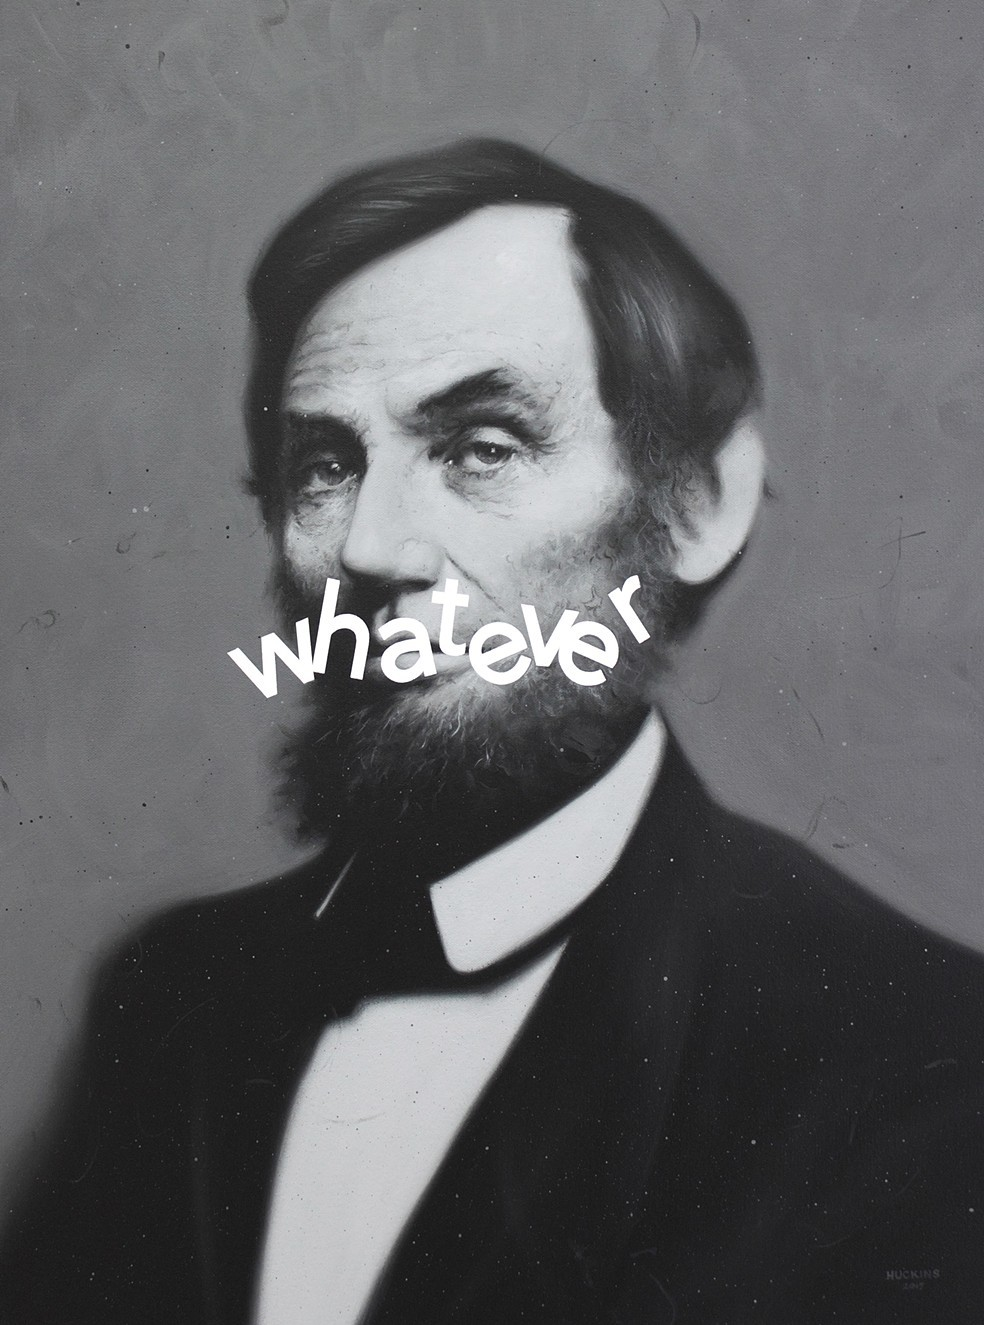 'Abraham Lincoln. Whatever' - Shawn Huckins